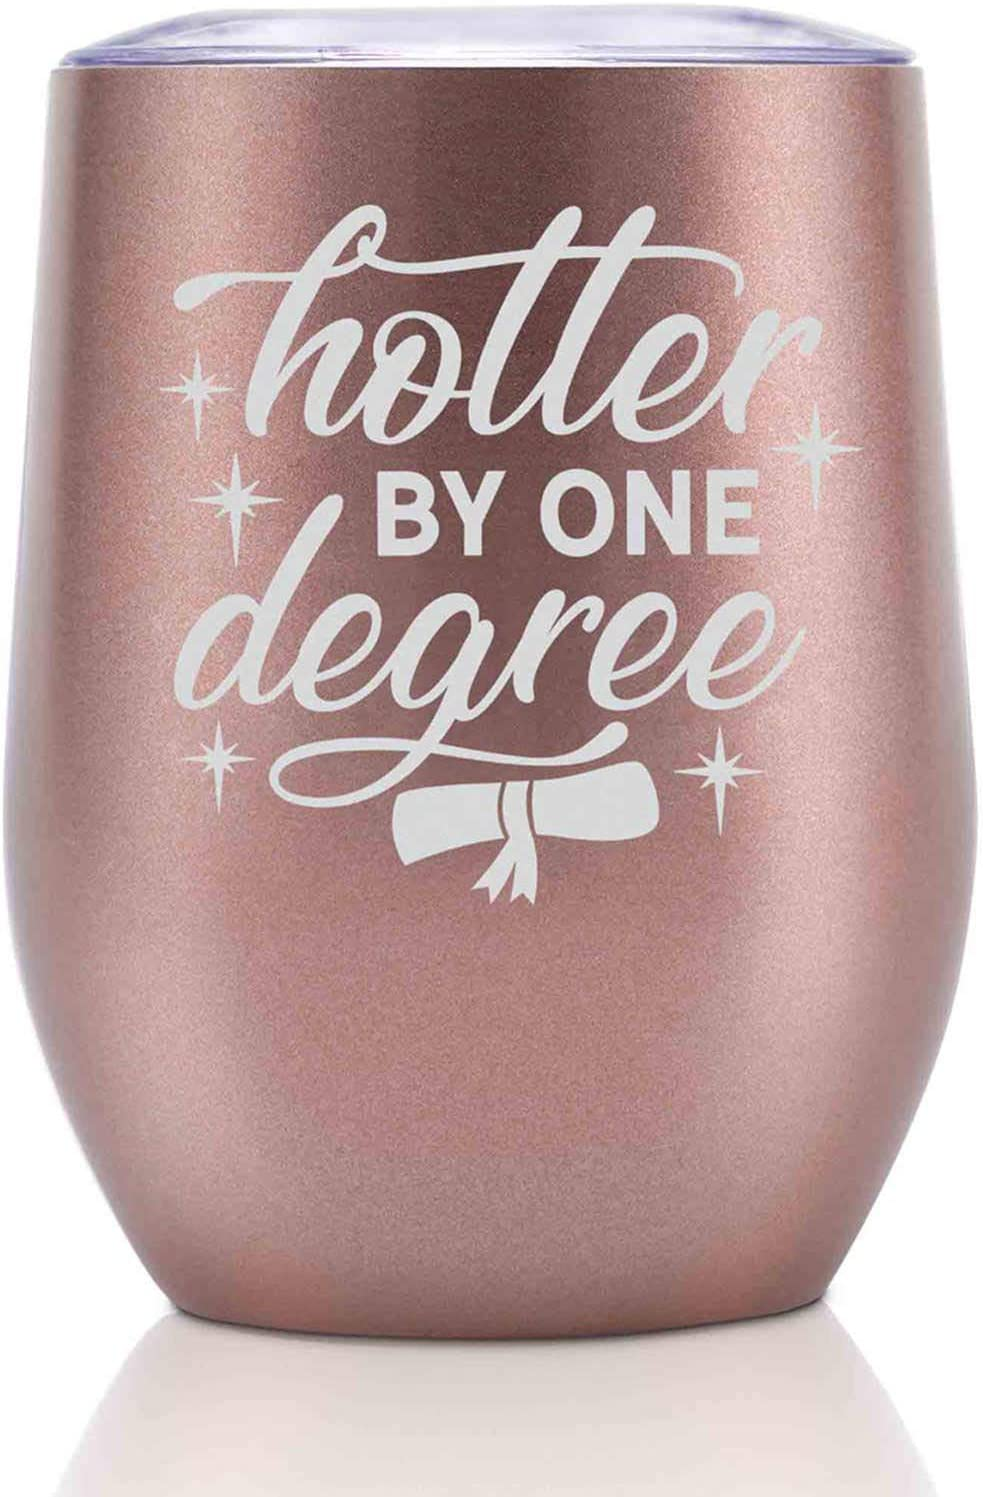 Graduation Max 44% OFF Gifts 2021 - 12oz Steel Tumbler Stainless